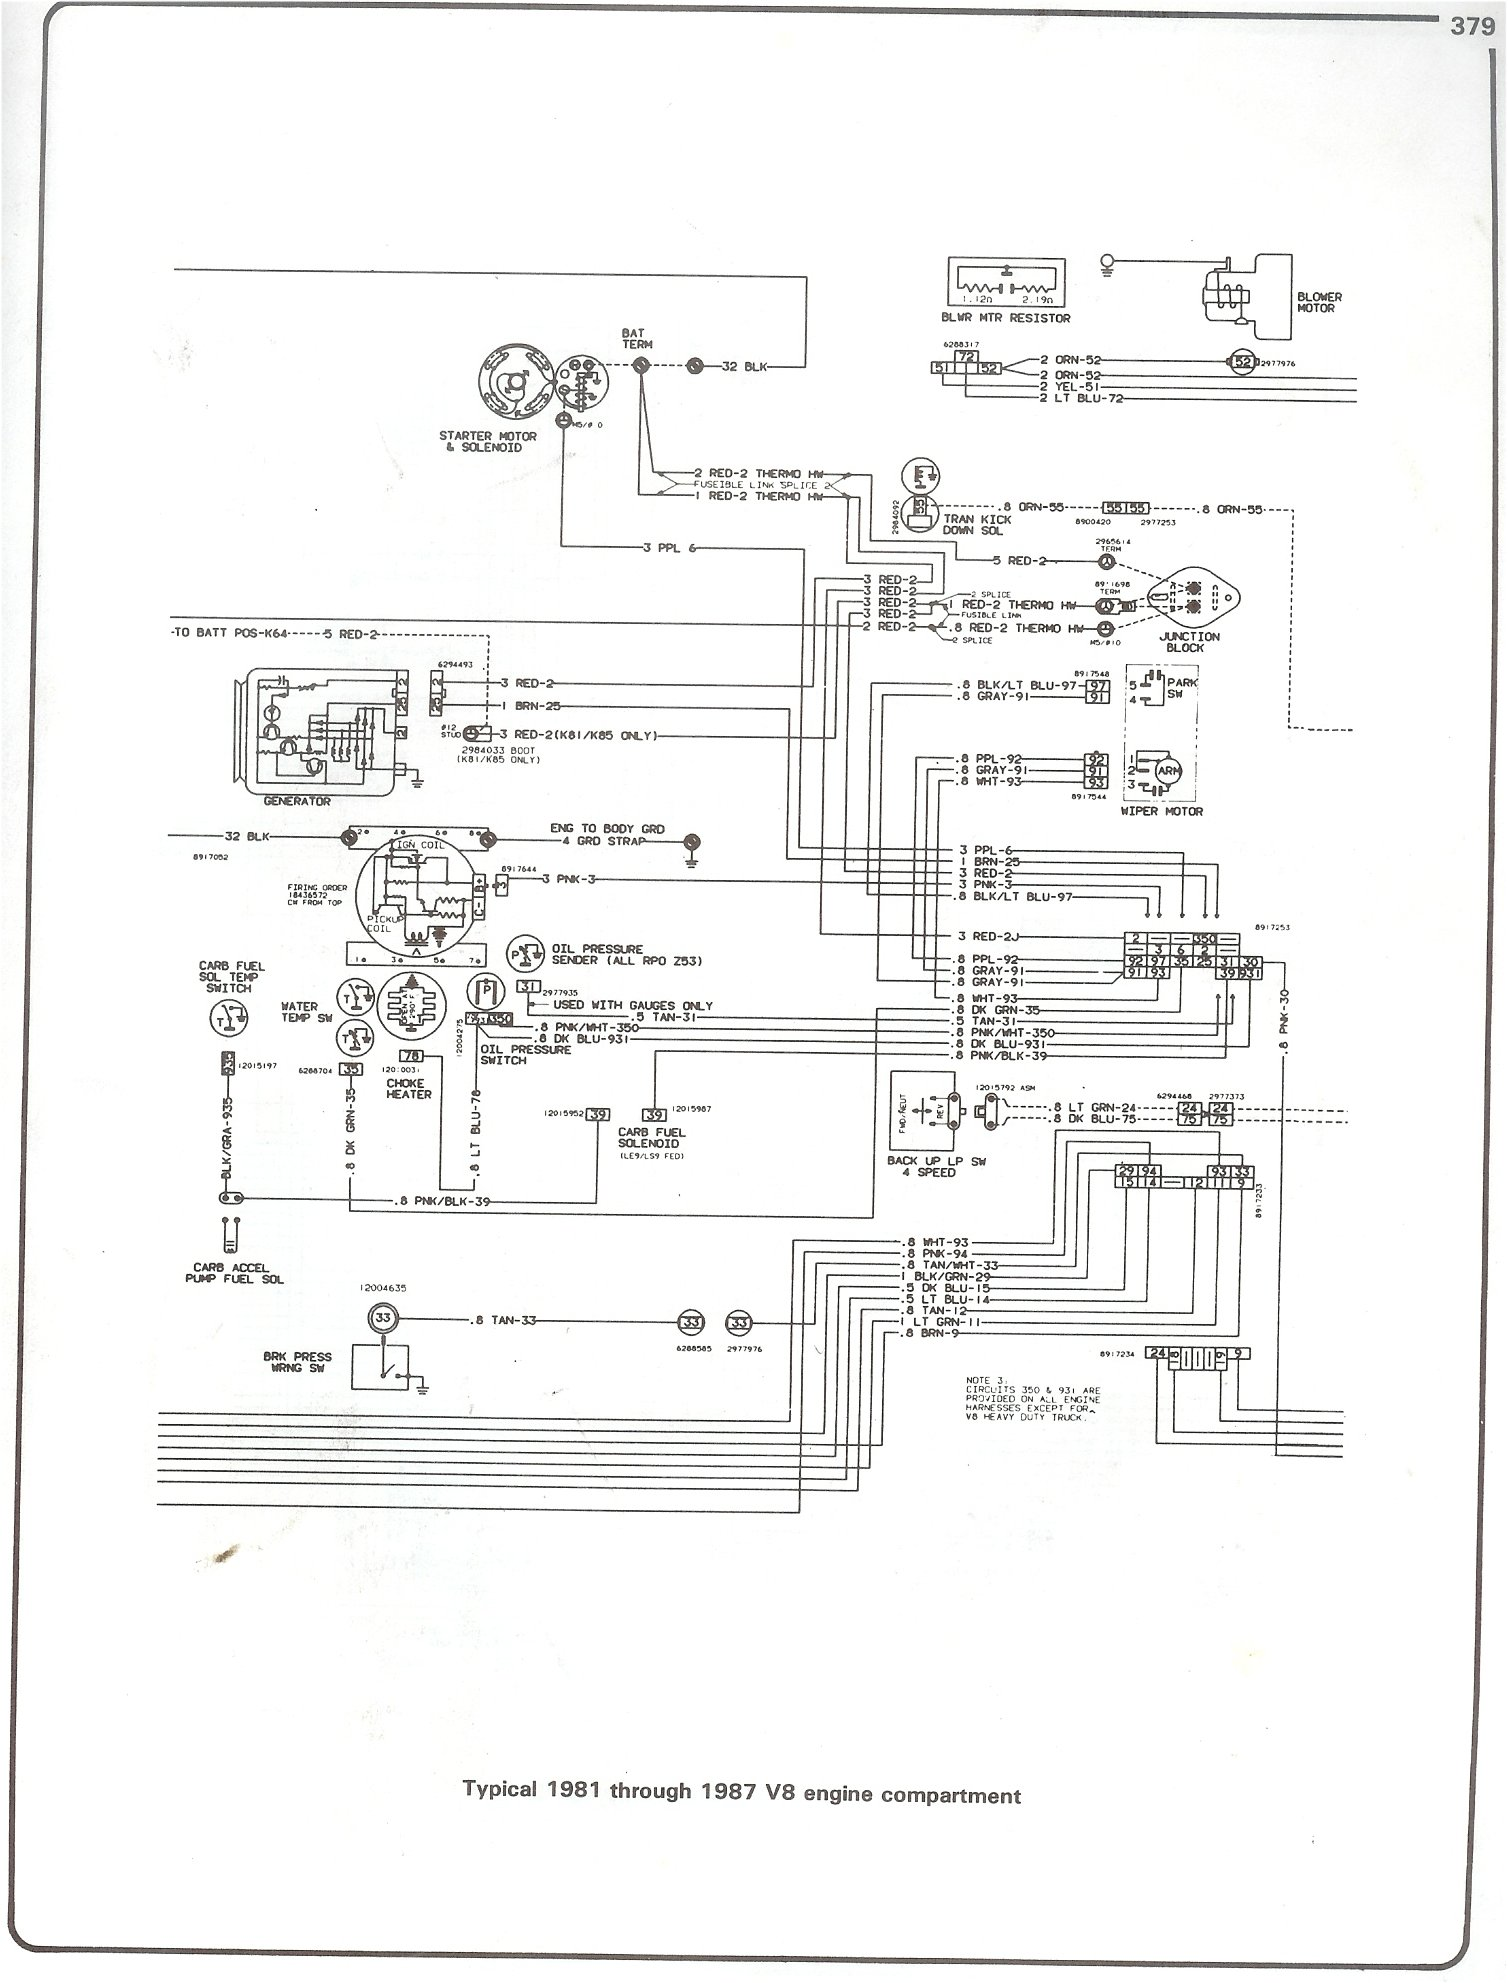 1975 Chevy Wiring Diagram Bookmark About Chevrolet Alternator Complete 73 87 Diagrams Rh Forum 87chevytrucks Com